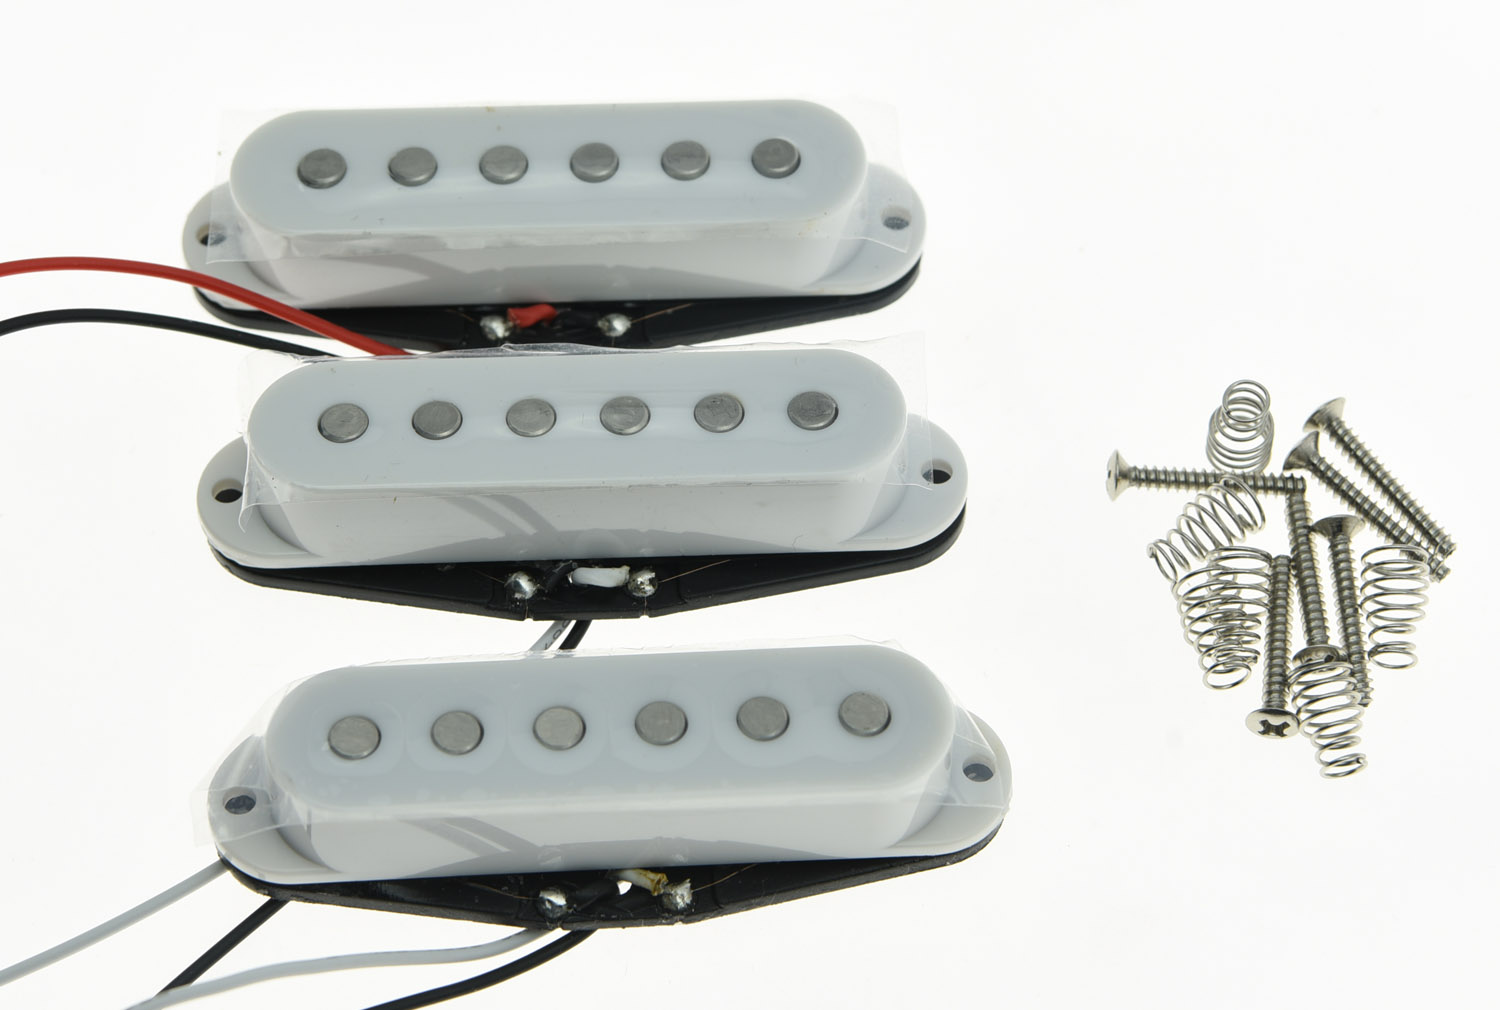 KAISH 3x N/M/B White Alnico 5 Single Coil Pickups High Output Sound Strat SSS Pickup<br>